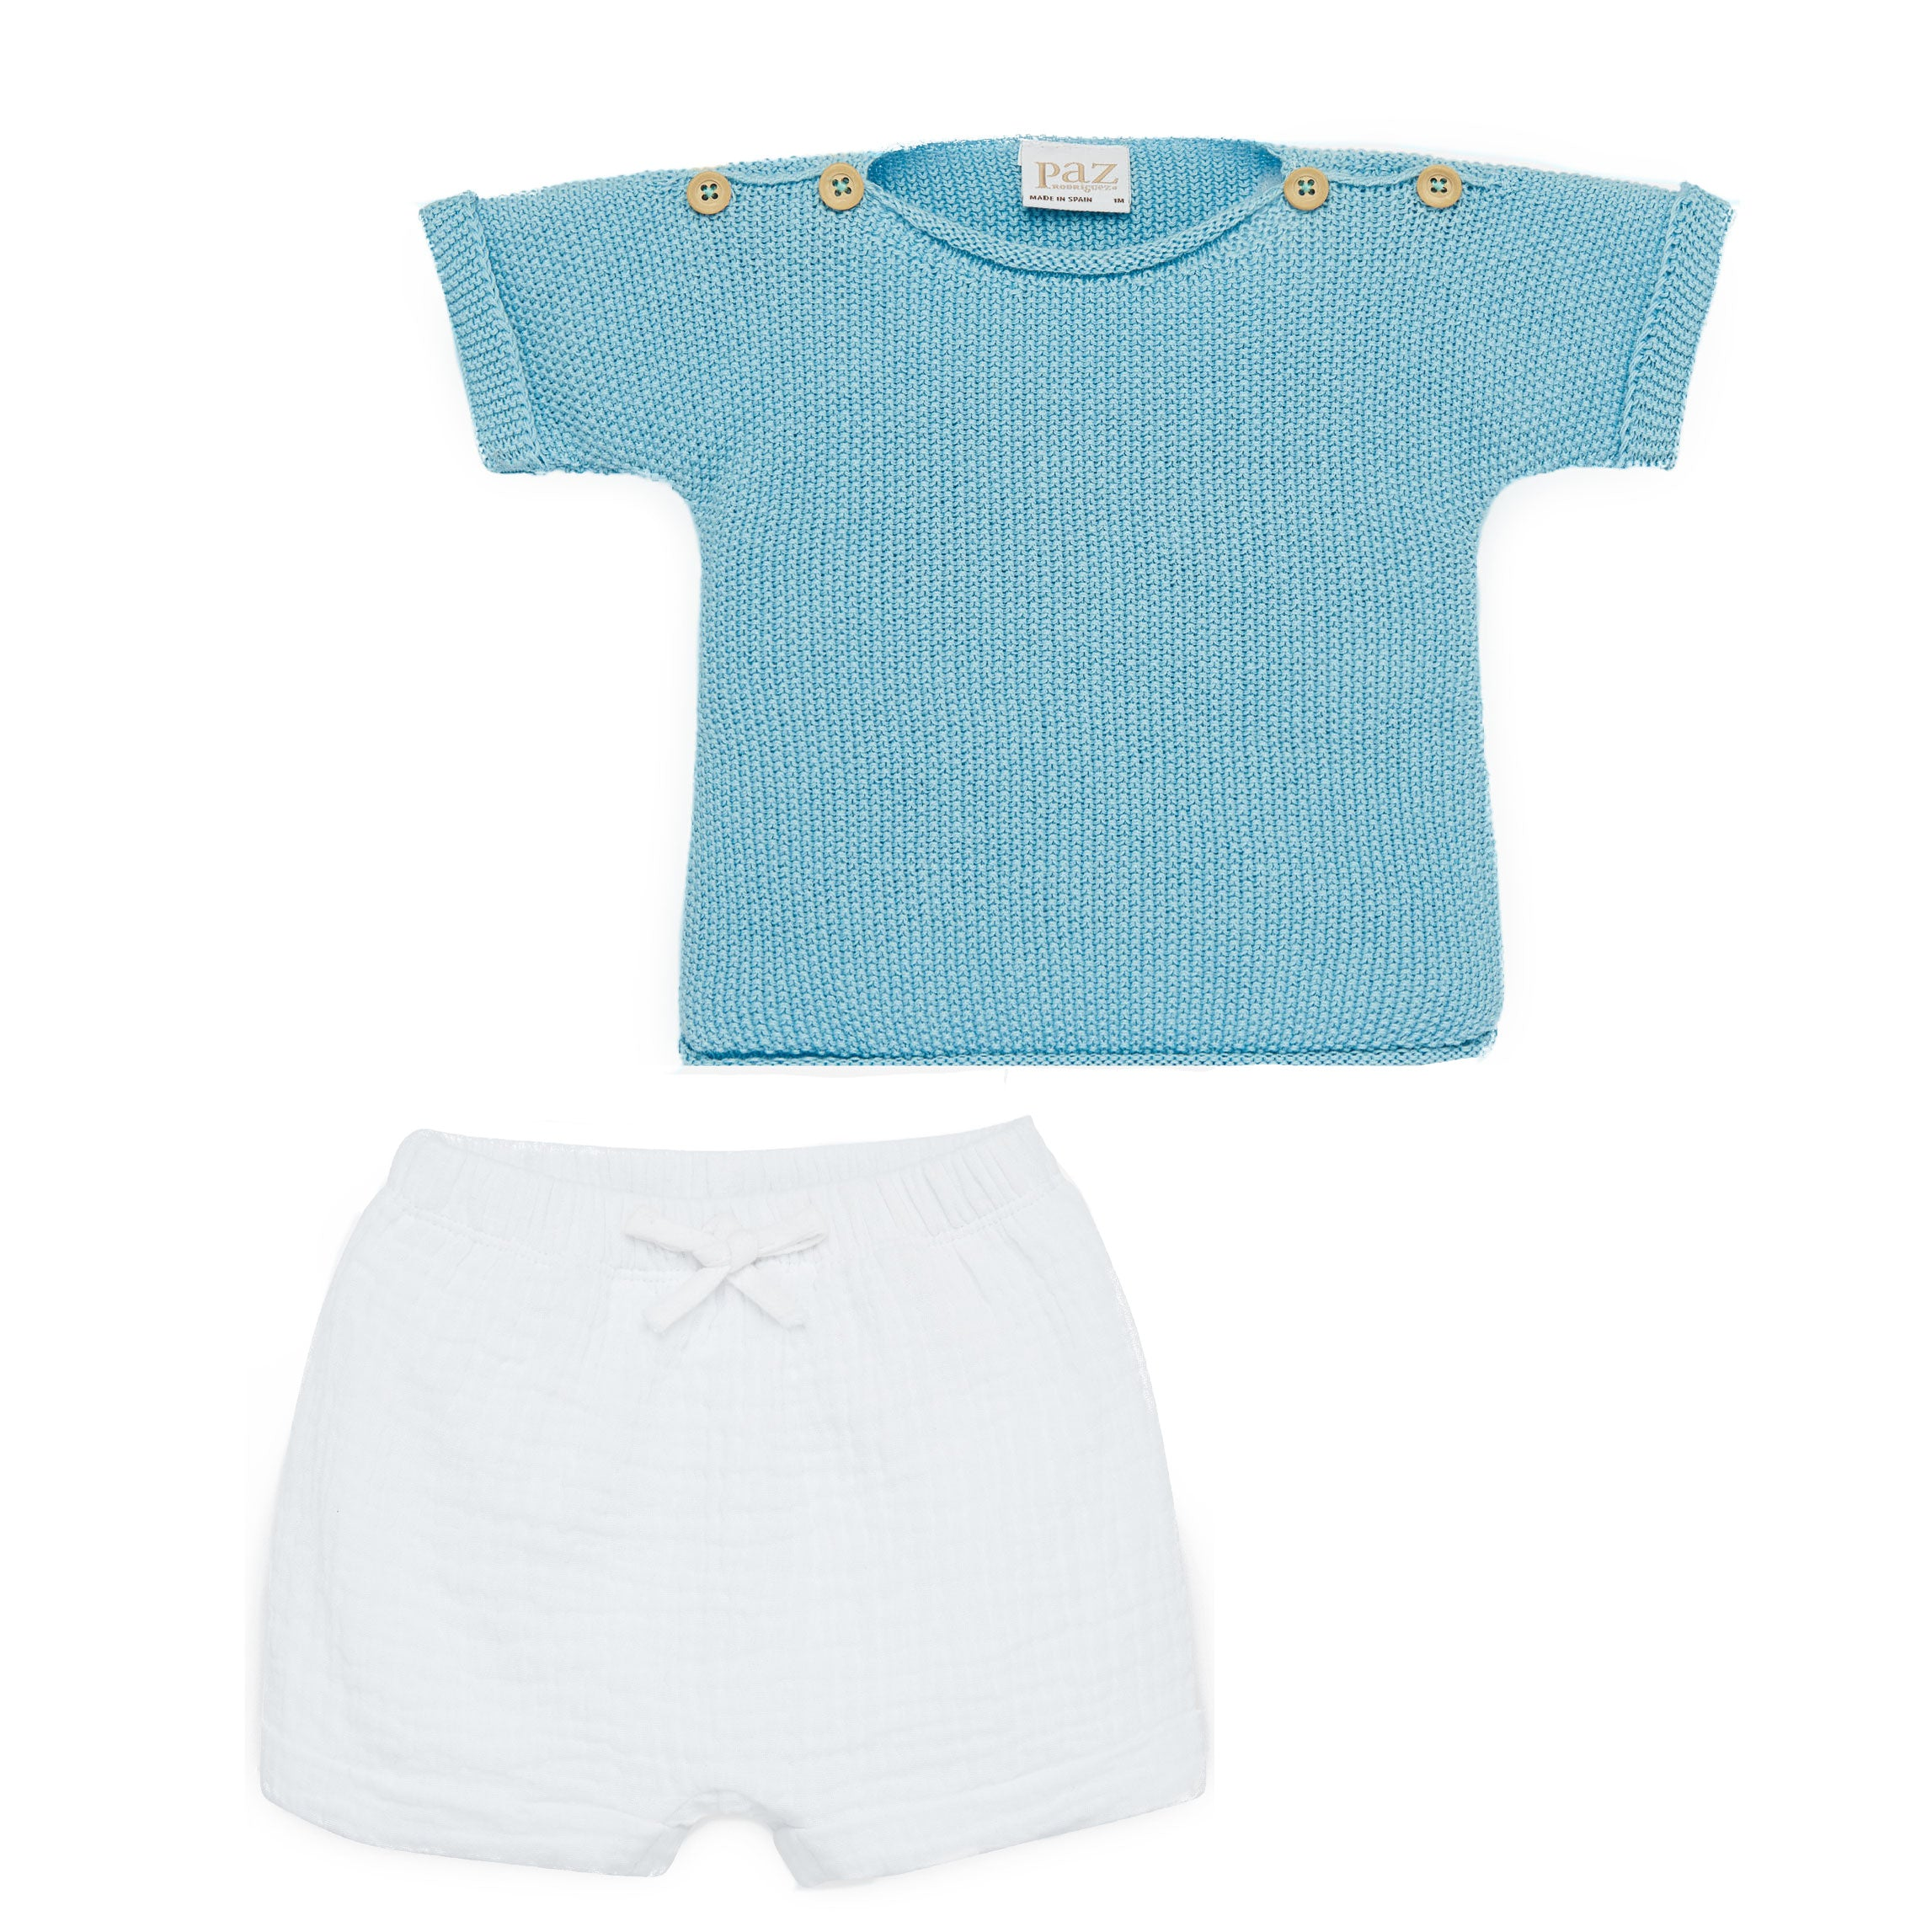 Paz Rodriguez Luxury Baby set perfect for a Corporate Baby Gift